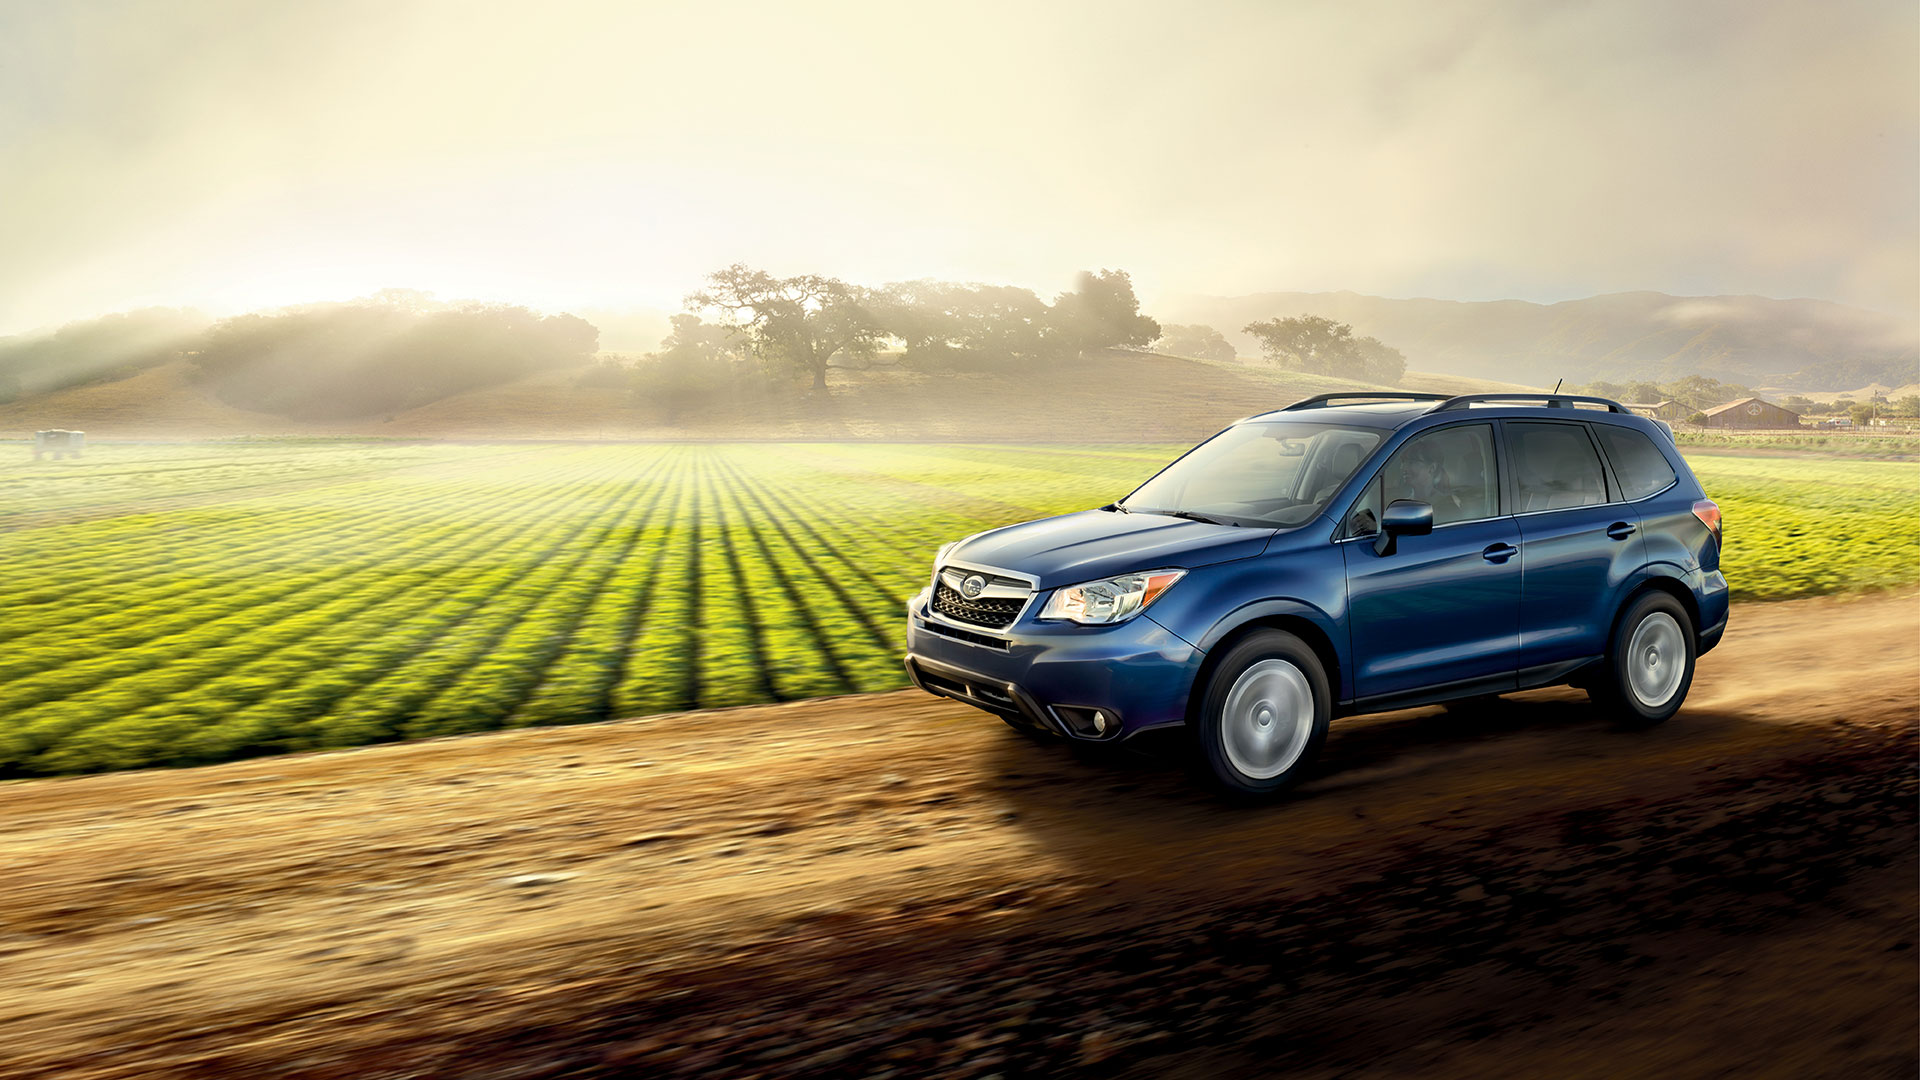 1920x1080 - Subaru Forester Wallpapers 4